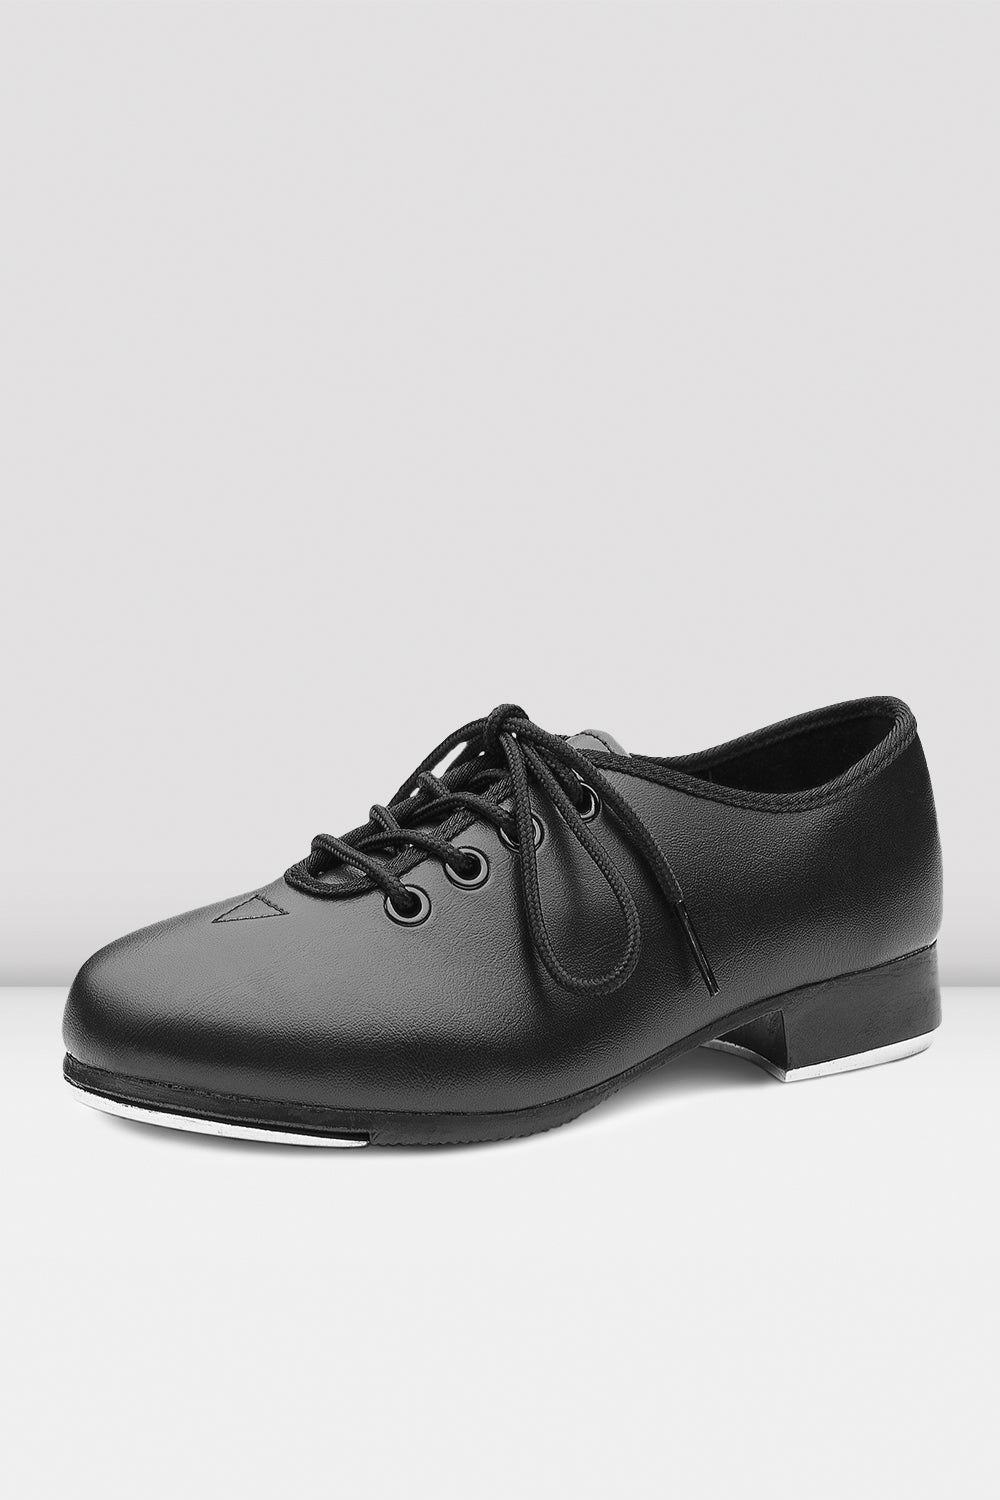 Katz Dancewear Girls Ladies Black PU Stage Jazz Tap Dance Shoes with Acoustic Tap Plates.All Sizes